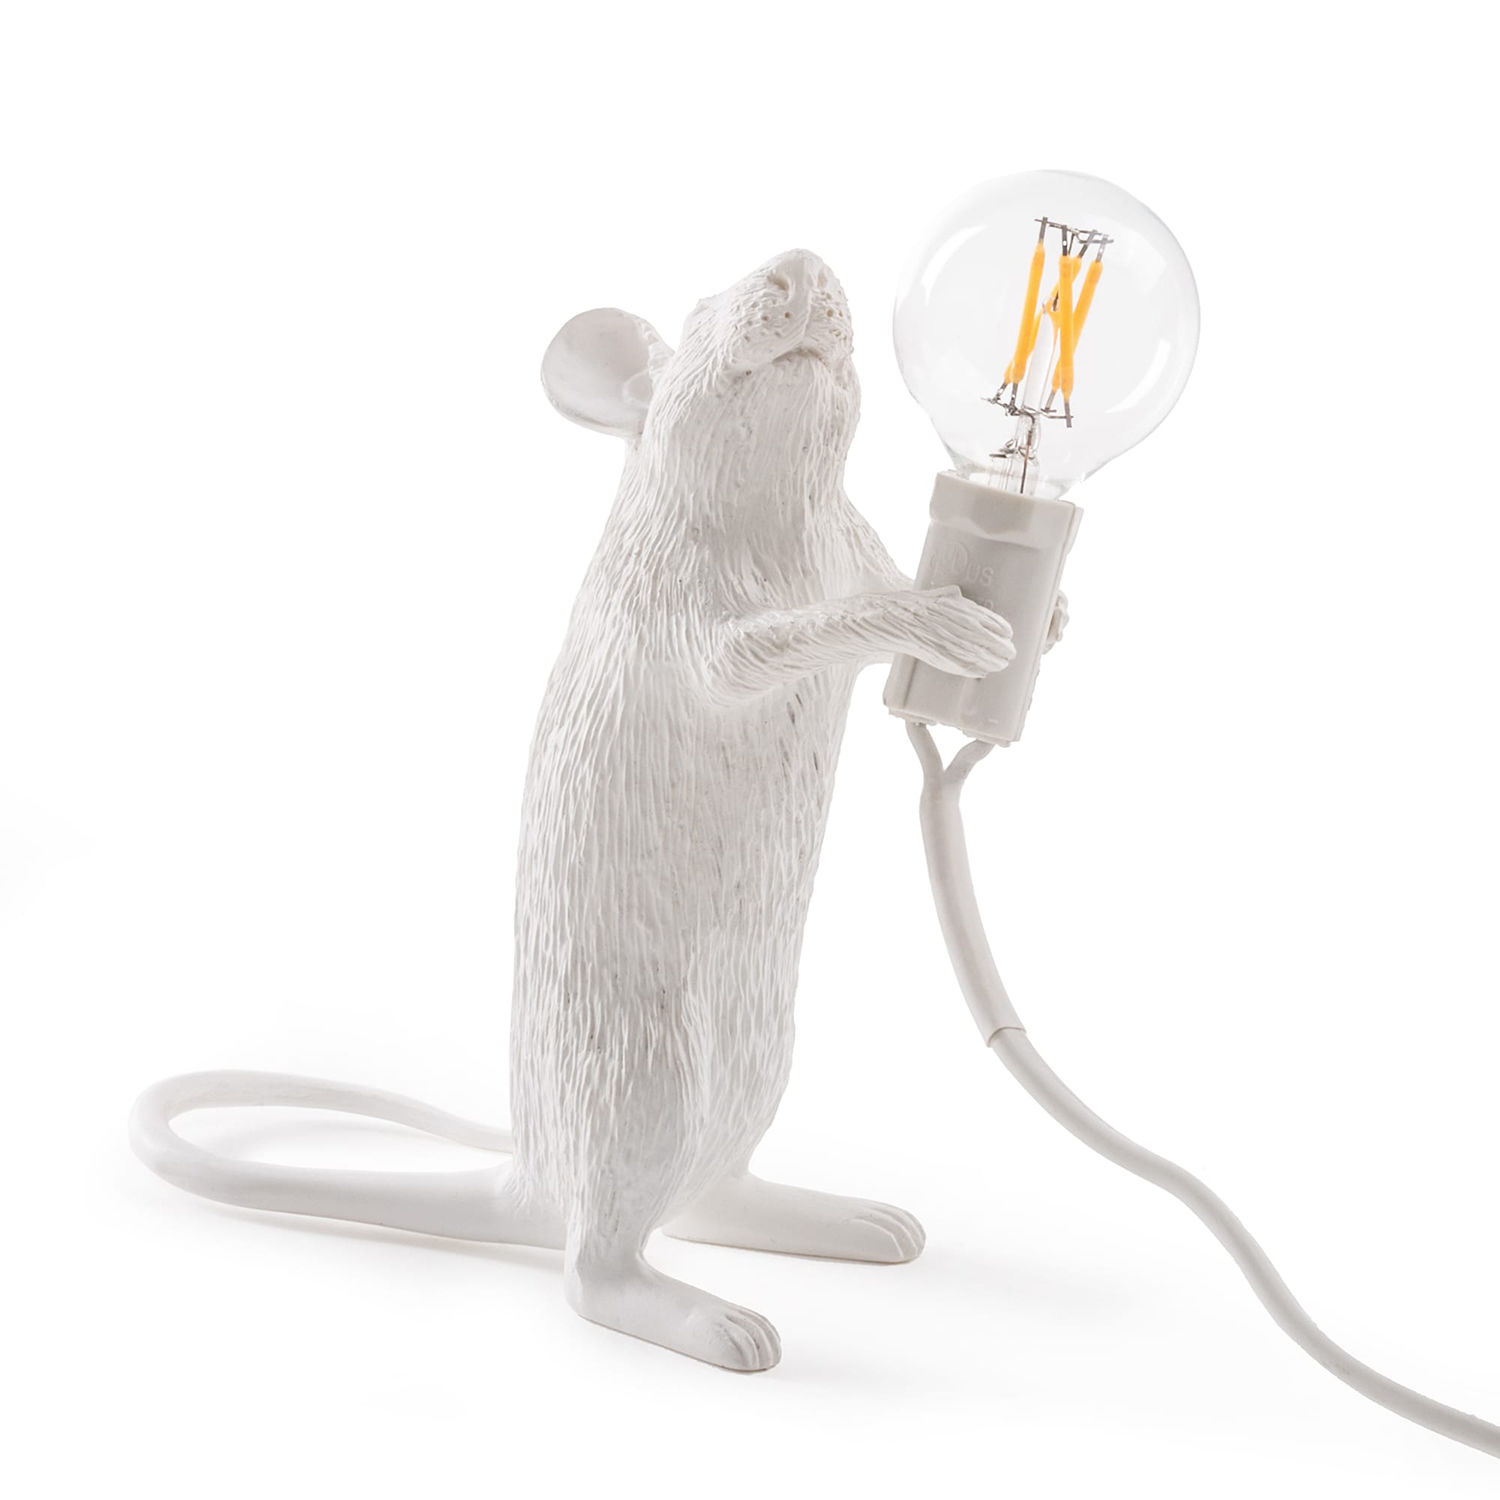 Mouse tafellamp Seletti staand wit